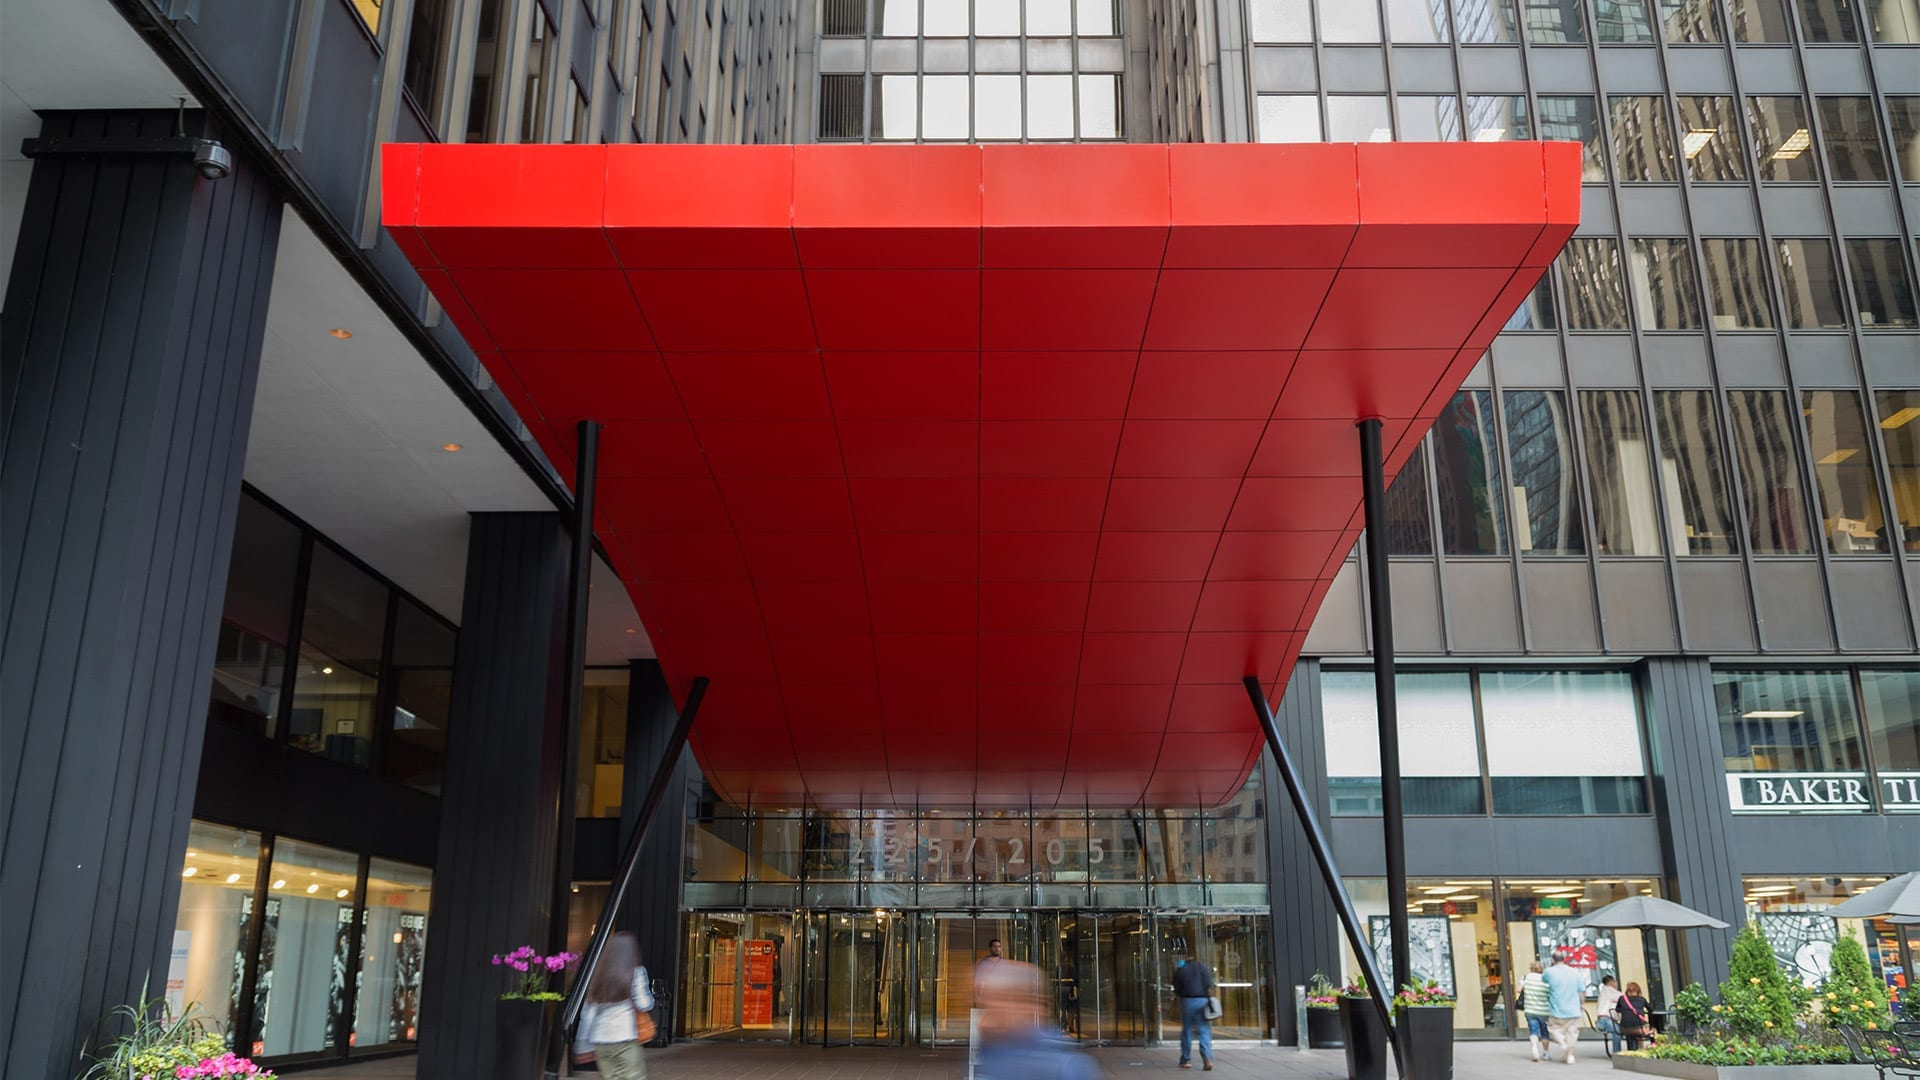 View of the red painted aluminum canopy from Michigan Avenue in Chicago.